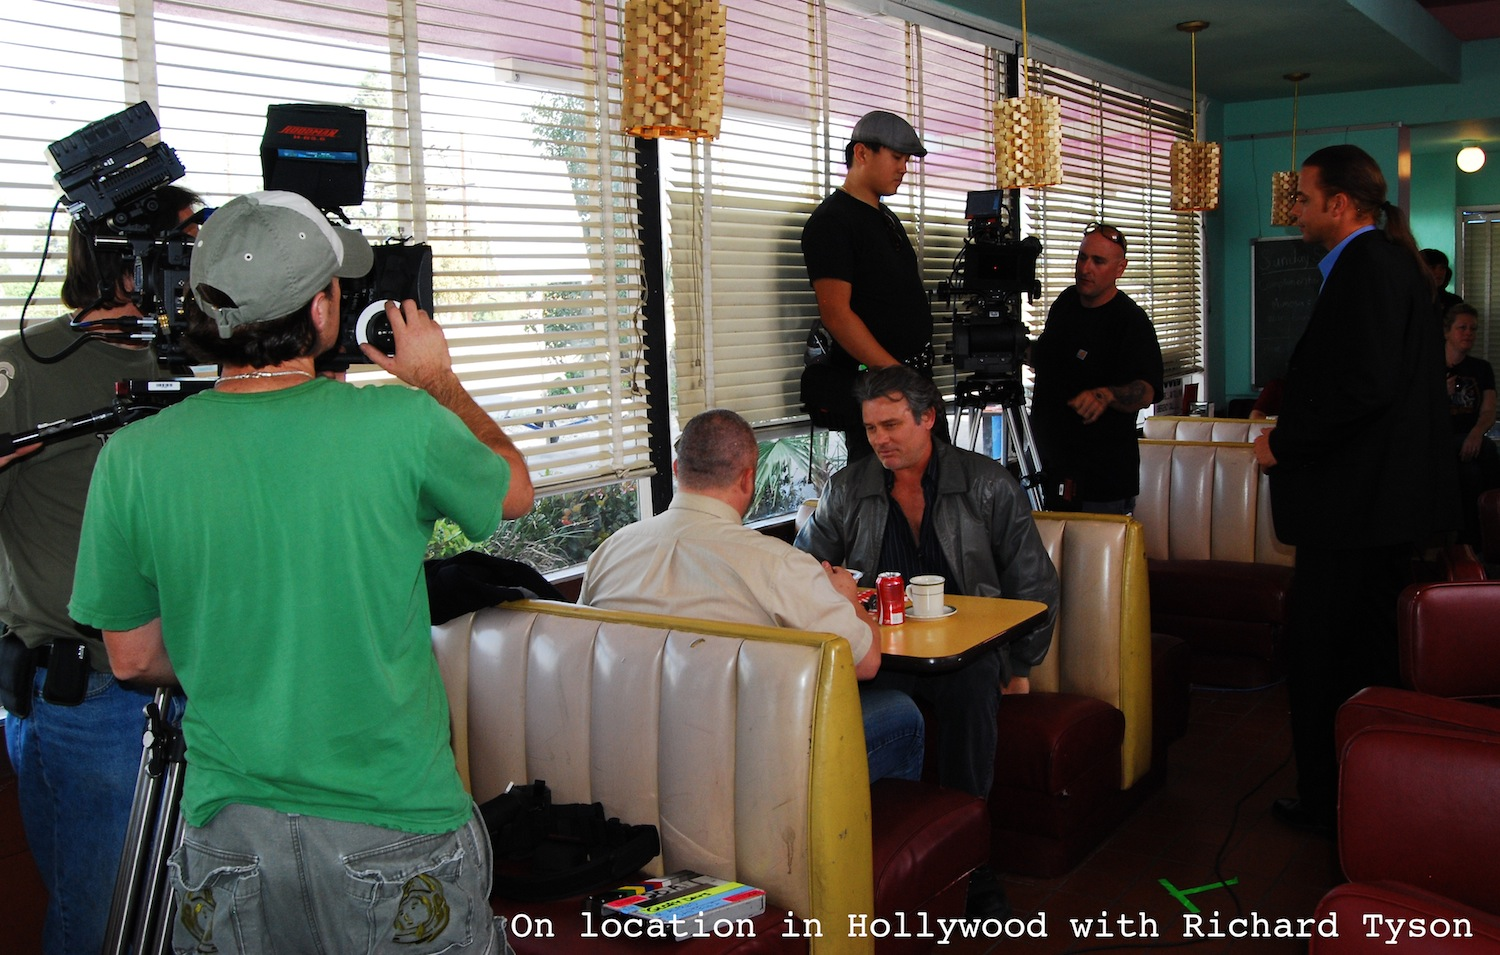 Hollywood cafe location